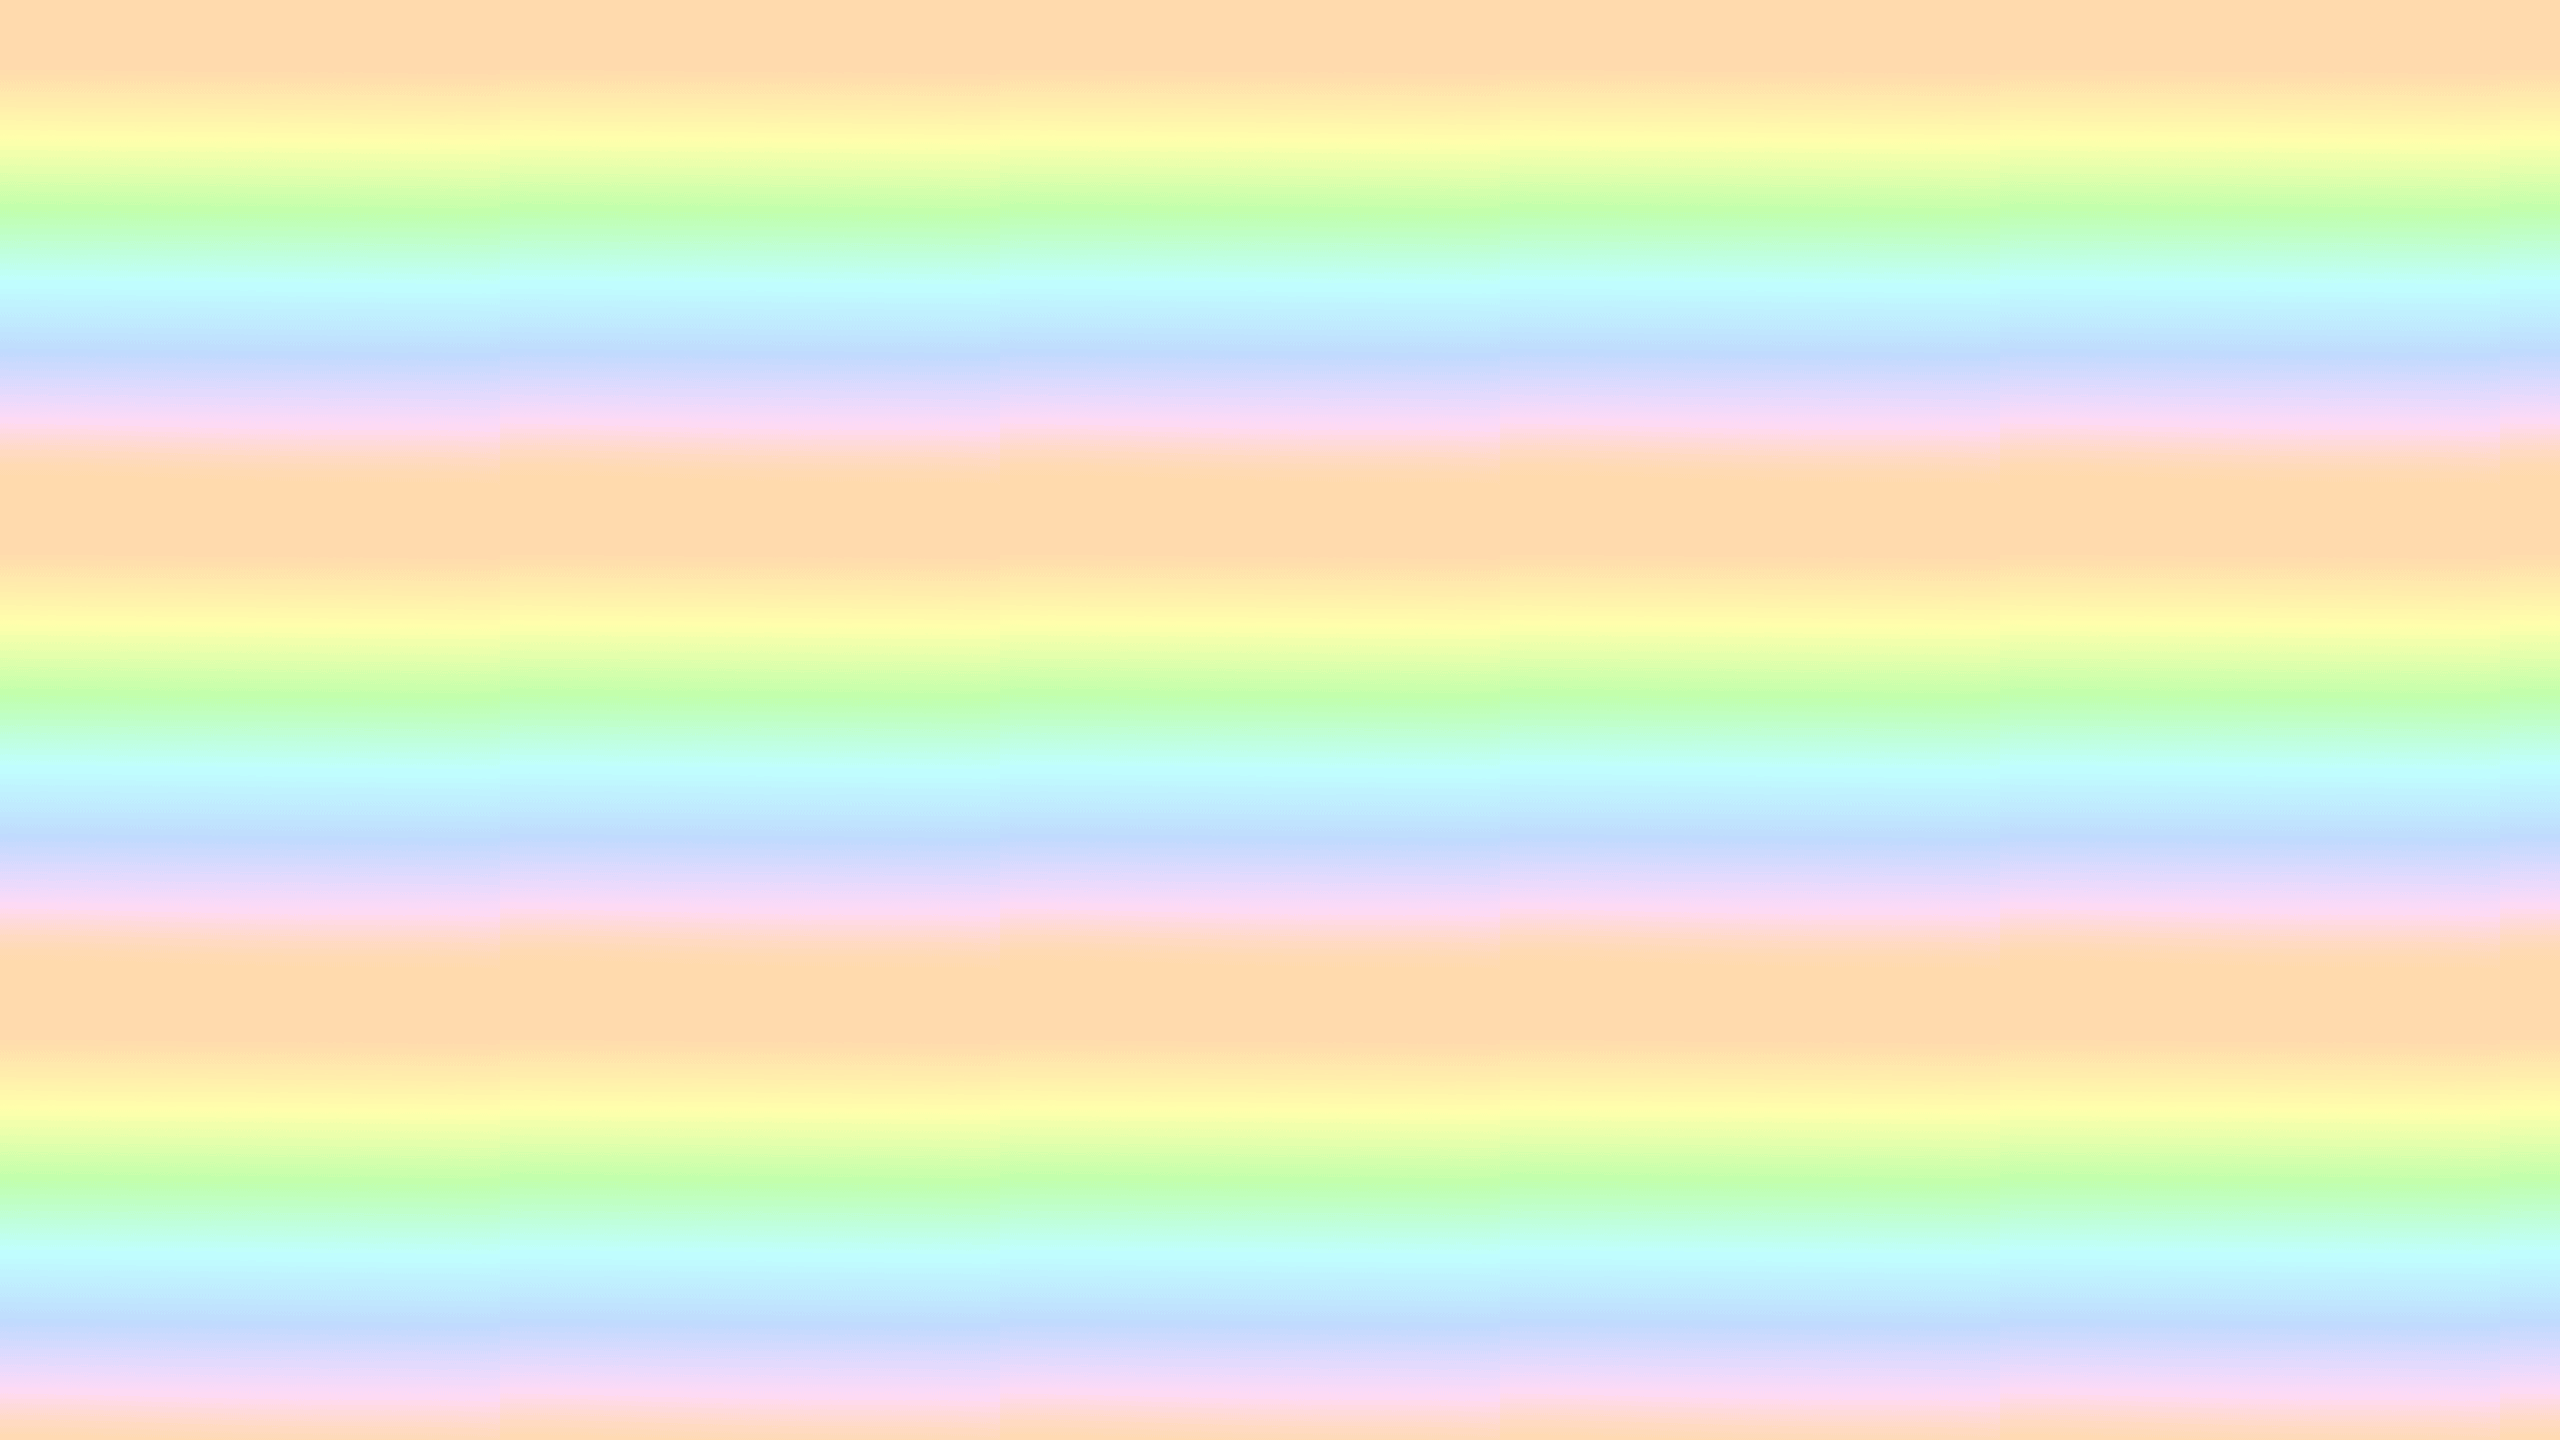 this Pastel Shades Desktop Wallpaper is easy Just save the wallpaper 2560x1440